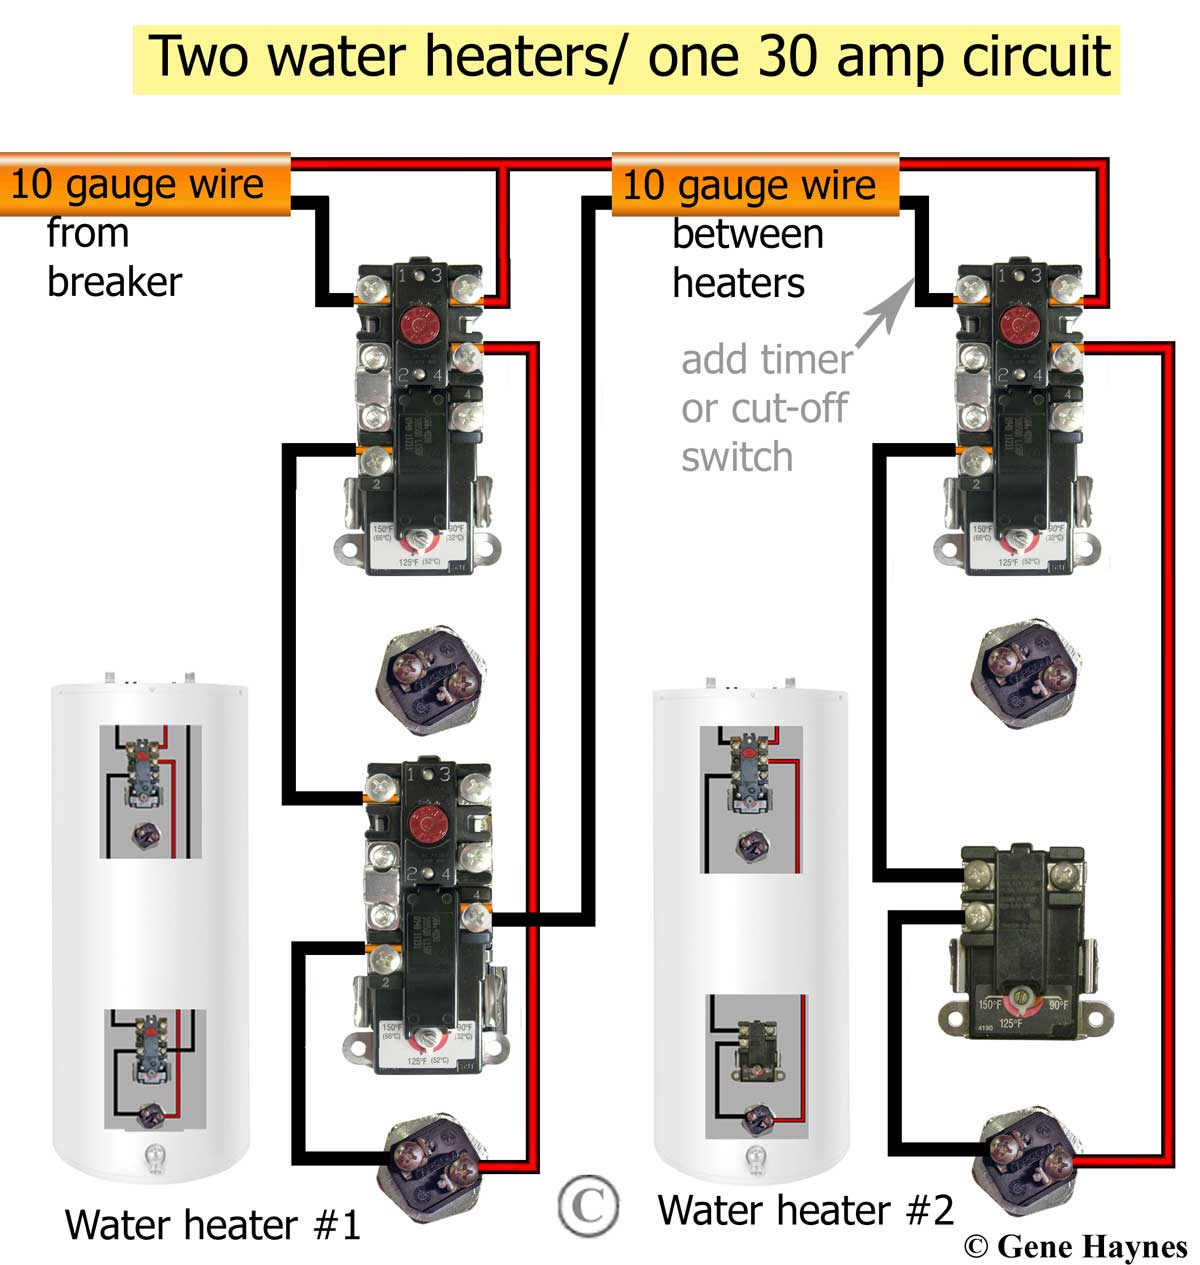 Reduntant thermostats - two water heaters Larger image ...